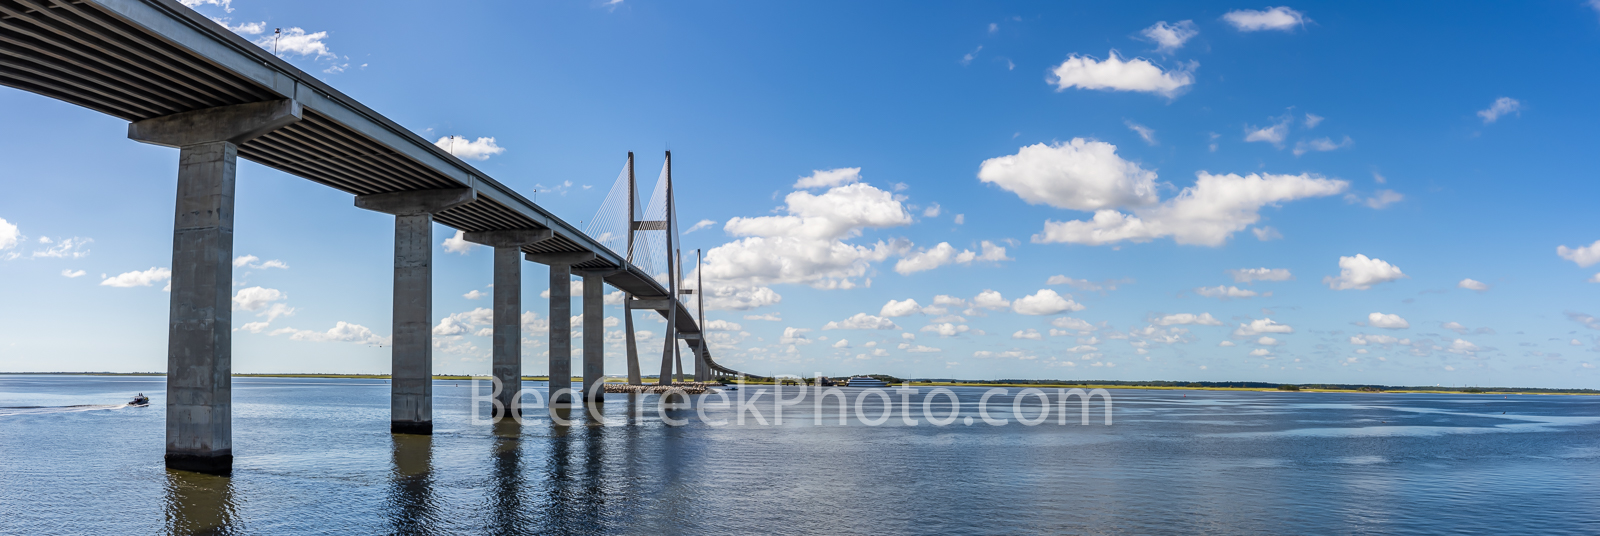 Sidney Lanier Bridge Pano Georgia - Sidney Lanier Bridge is a cable stay bridge that spans the Brunswick river in Georgia. The...